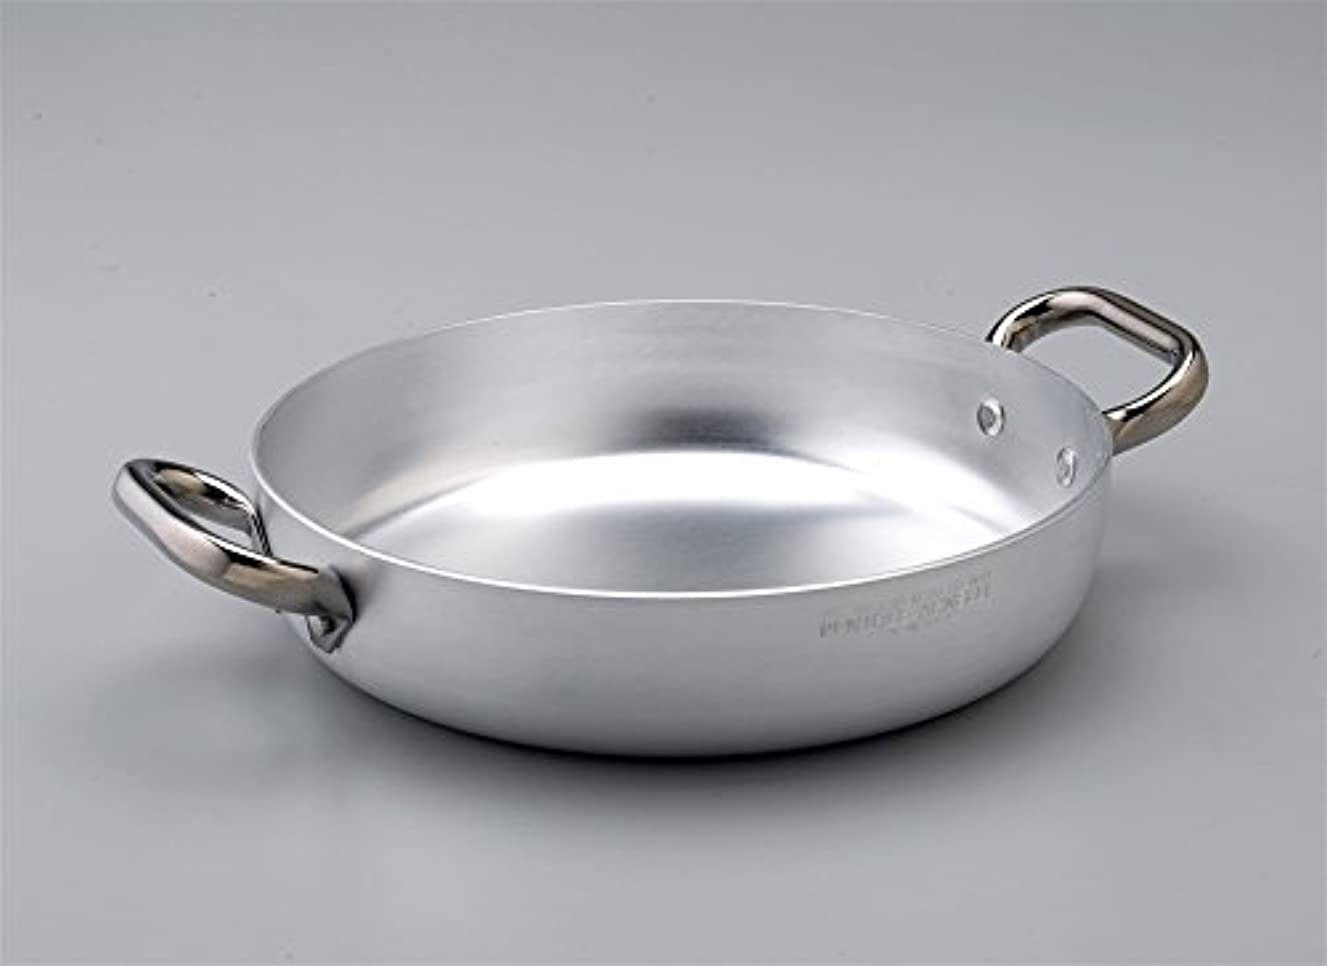 Pentole Agnelli Aluminium Professional 3 Mm. Thick Induction Omelette Pan With 2 Handles, Diameter 28 Cm.